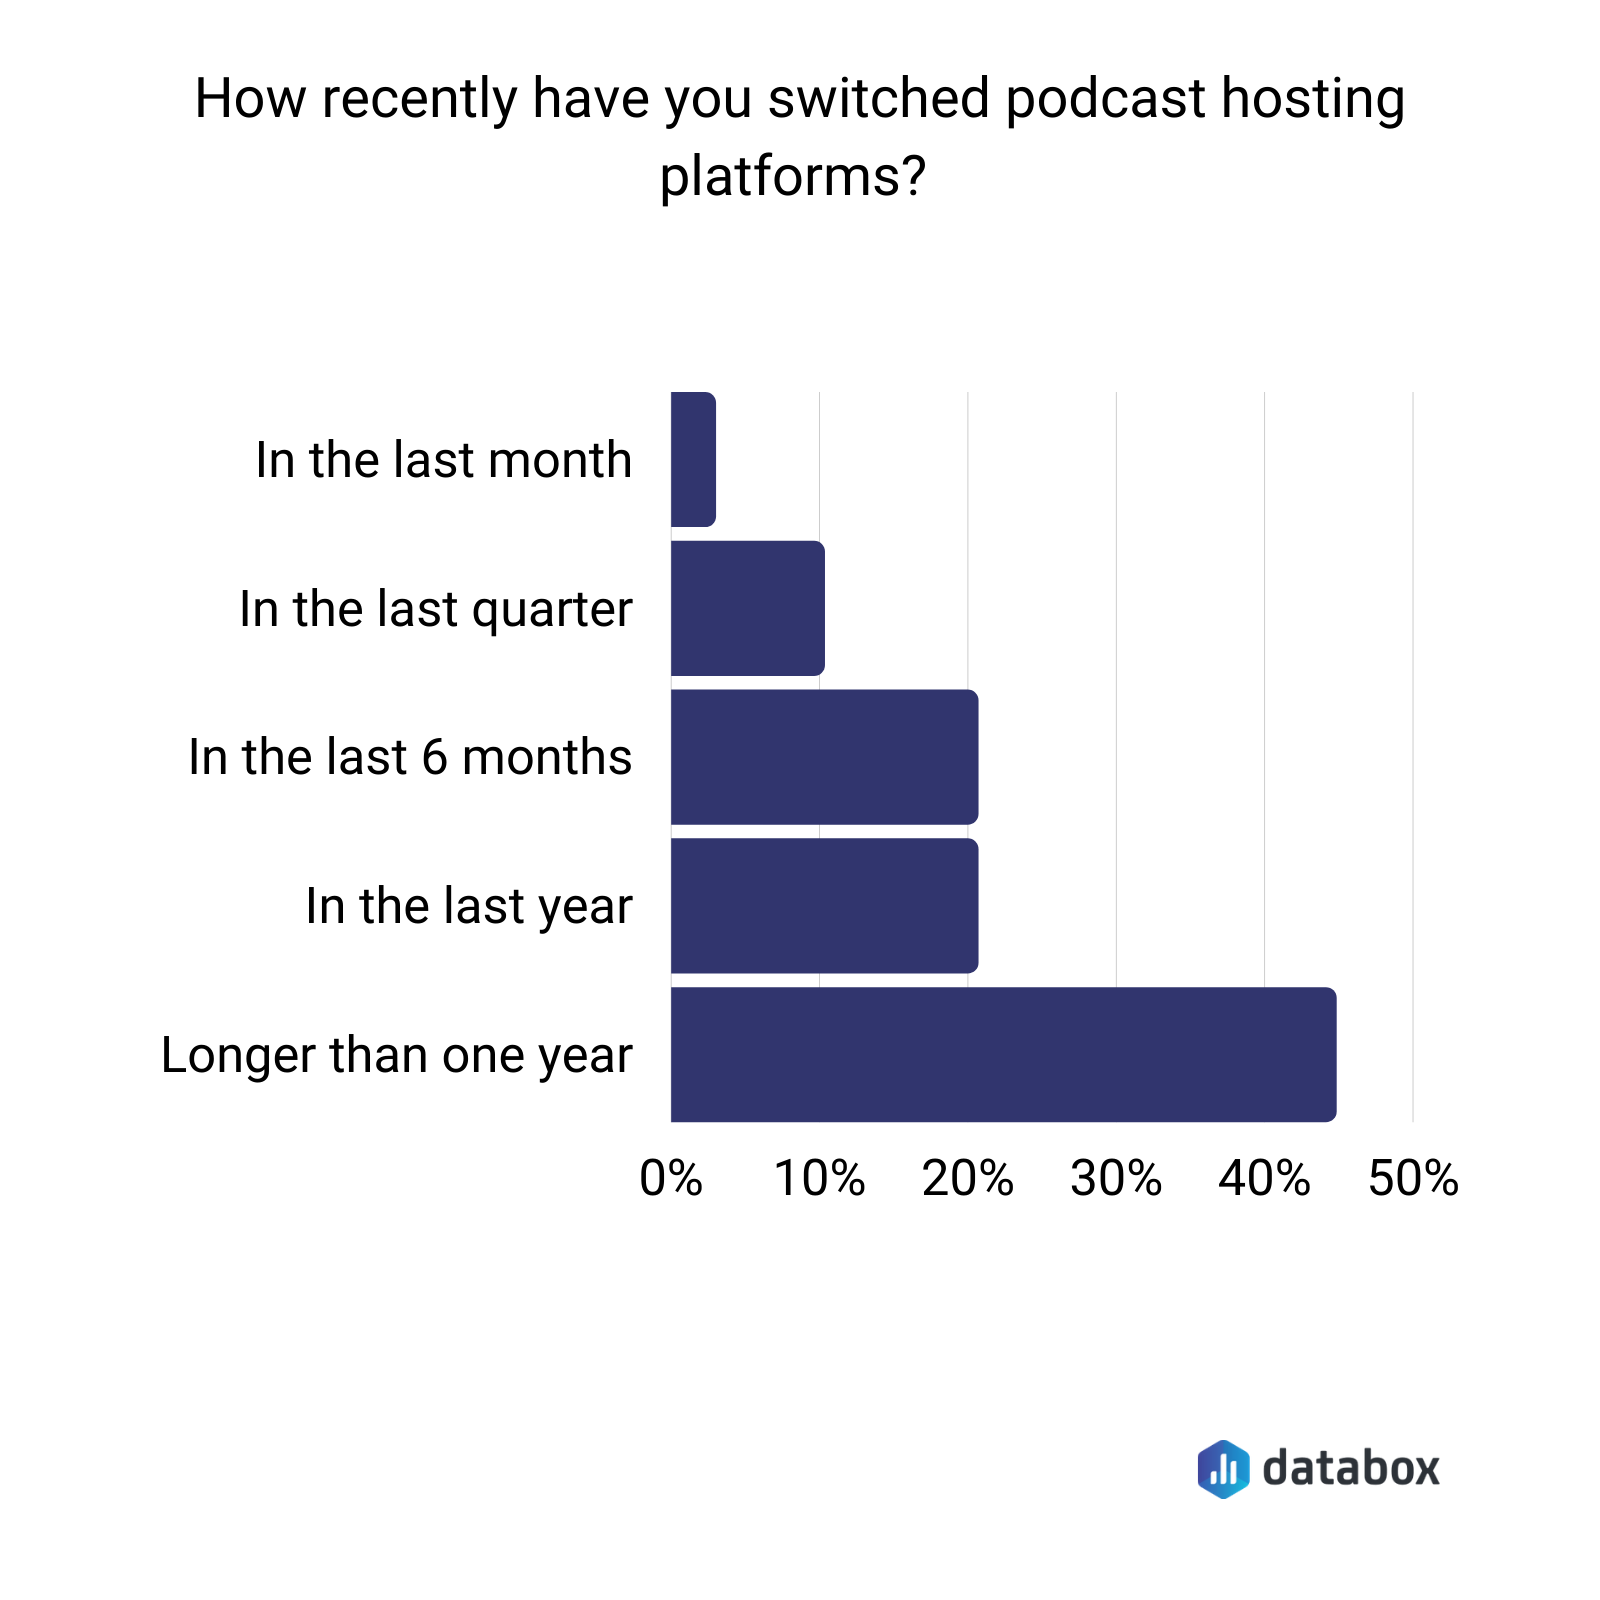 podcast hosting platform switching frequency data